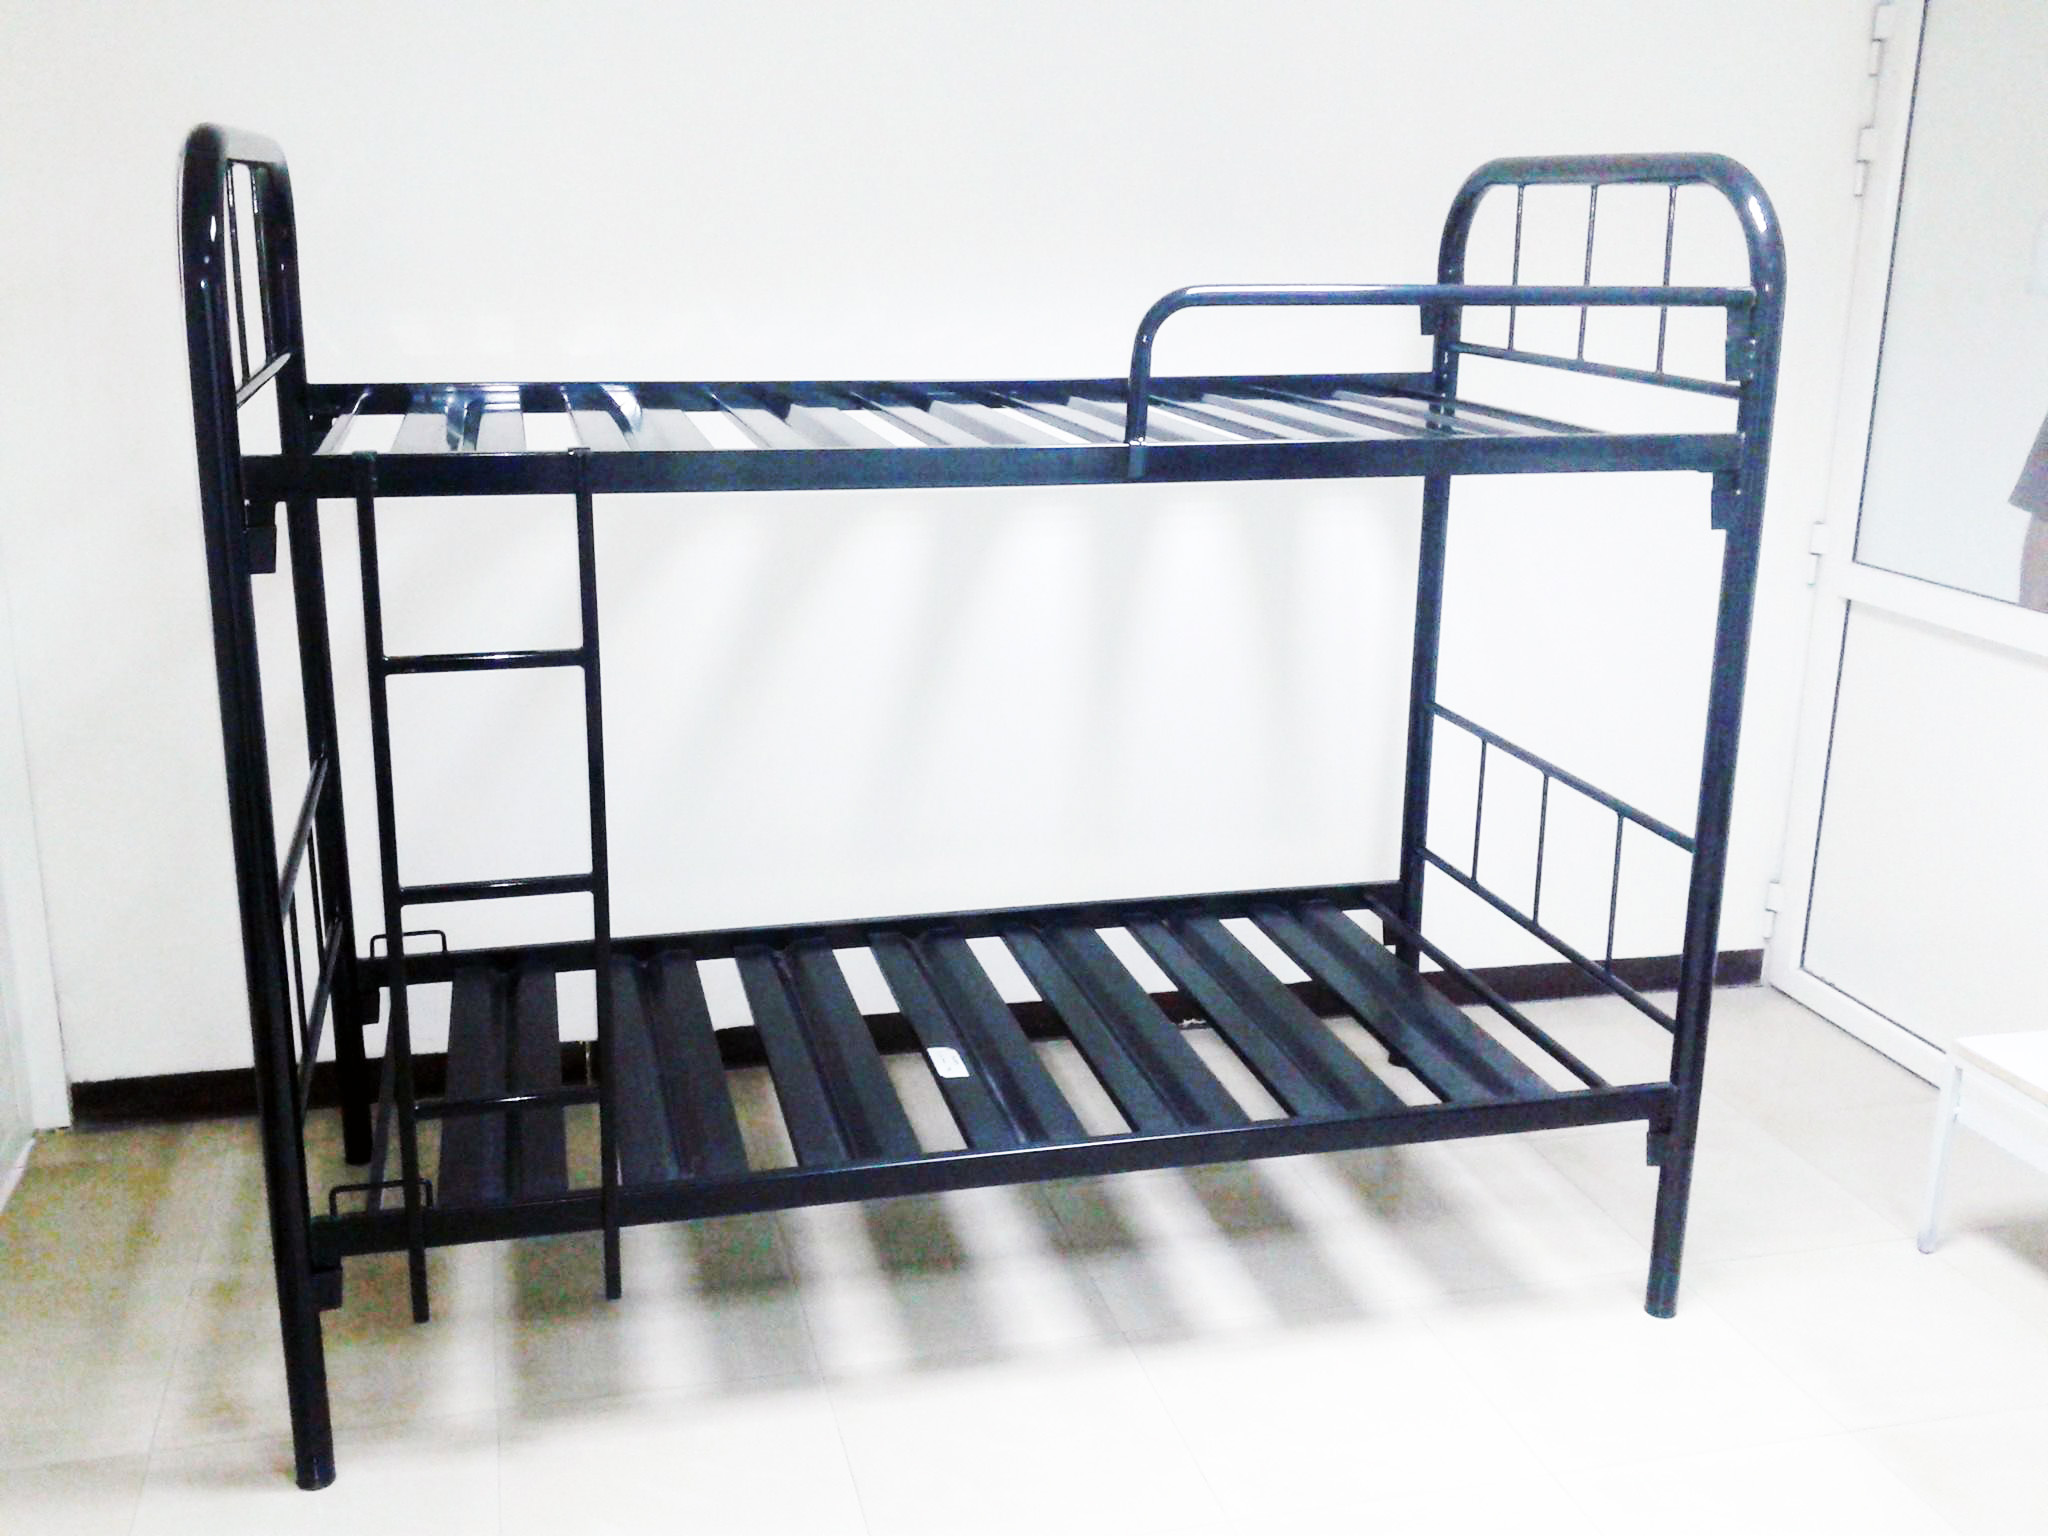 Steel storage racks supplier in uae for Second hand bunk beds